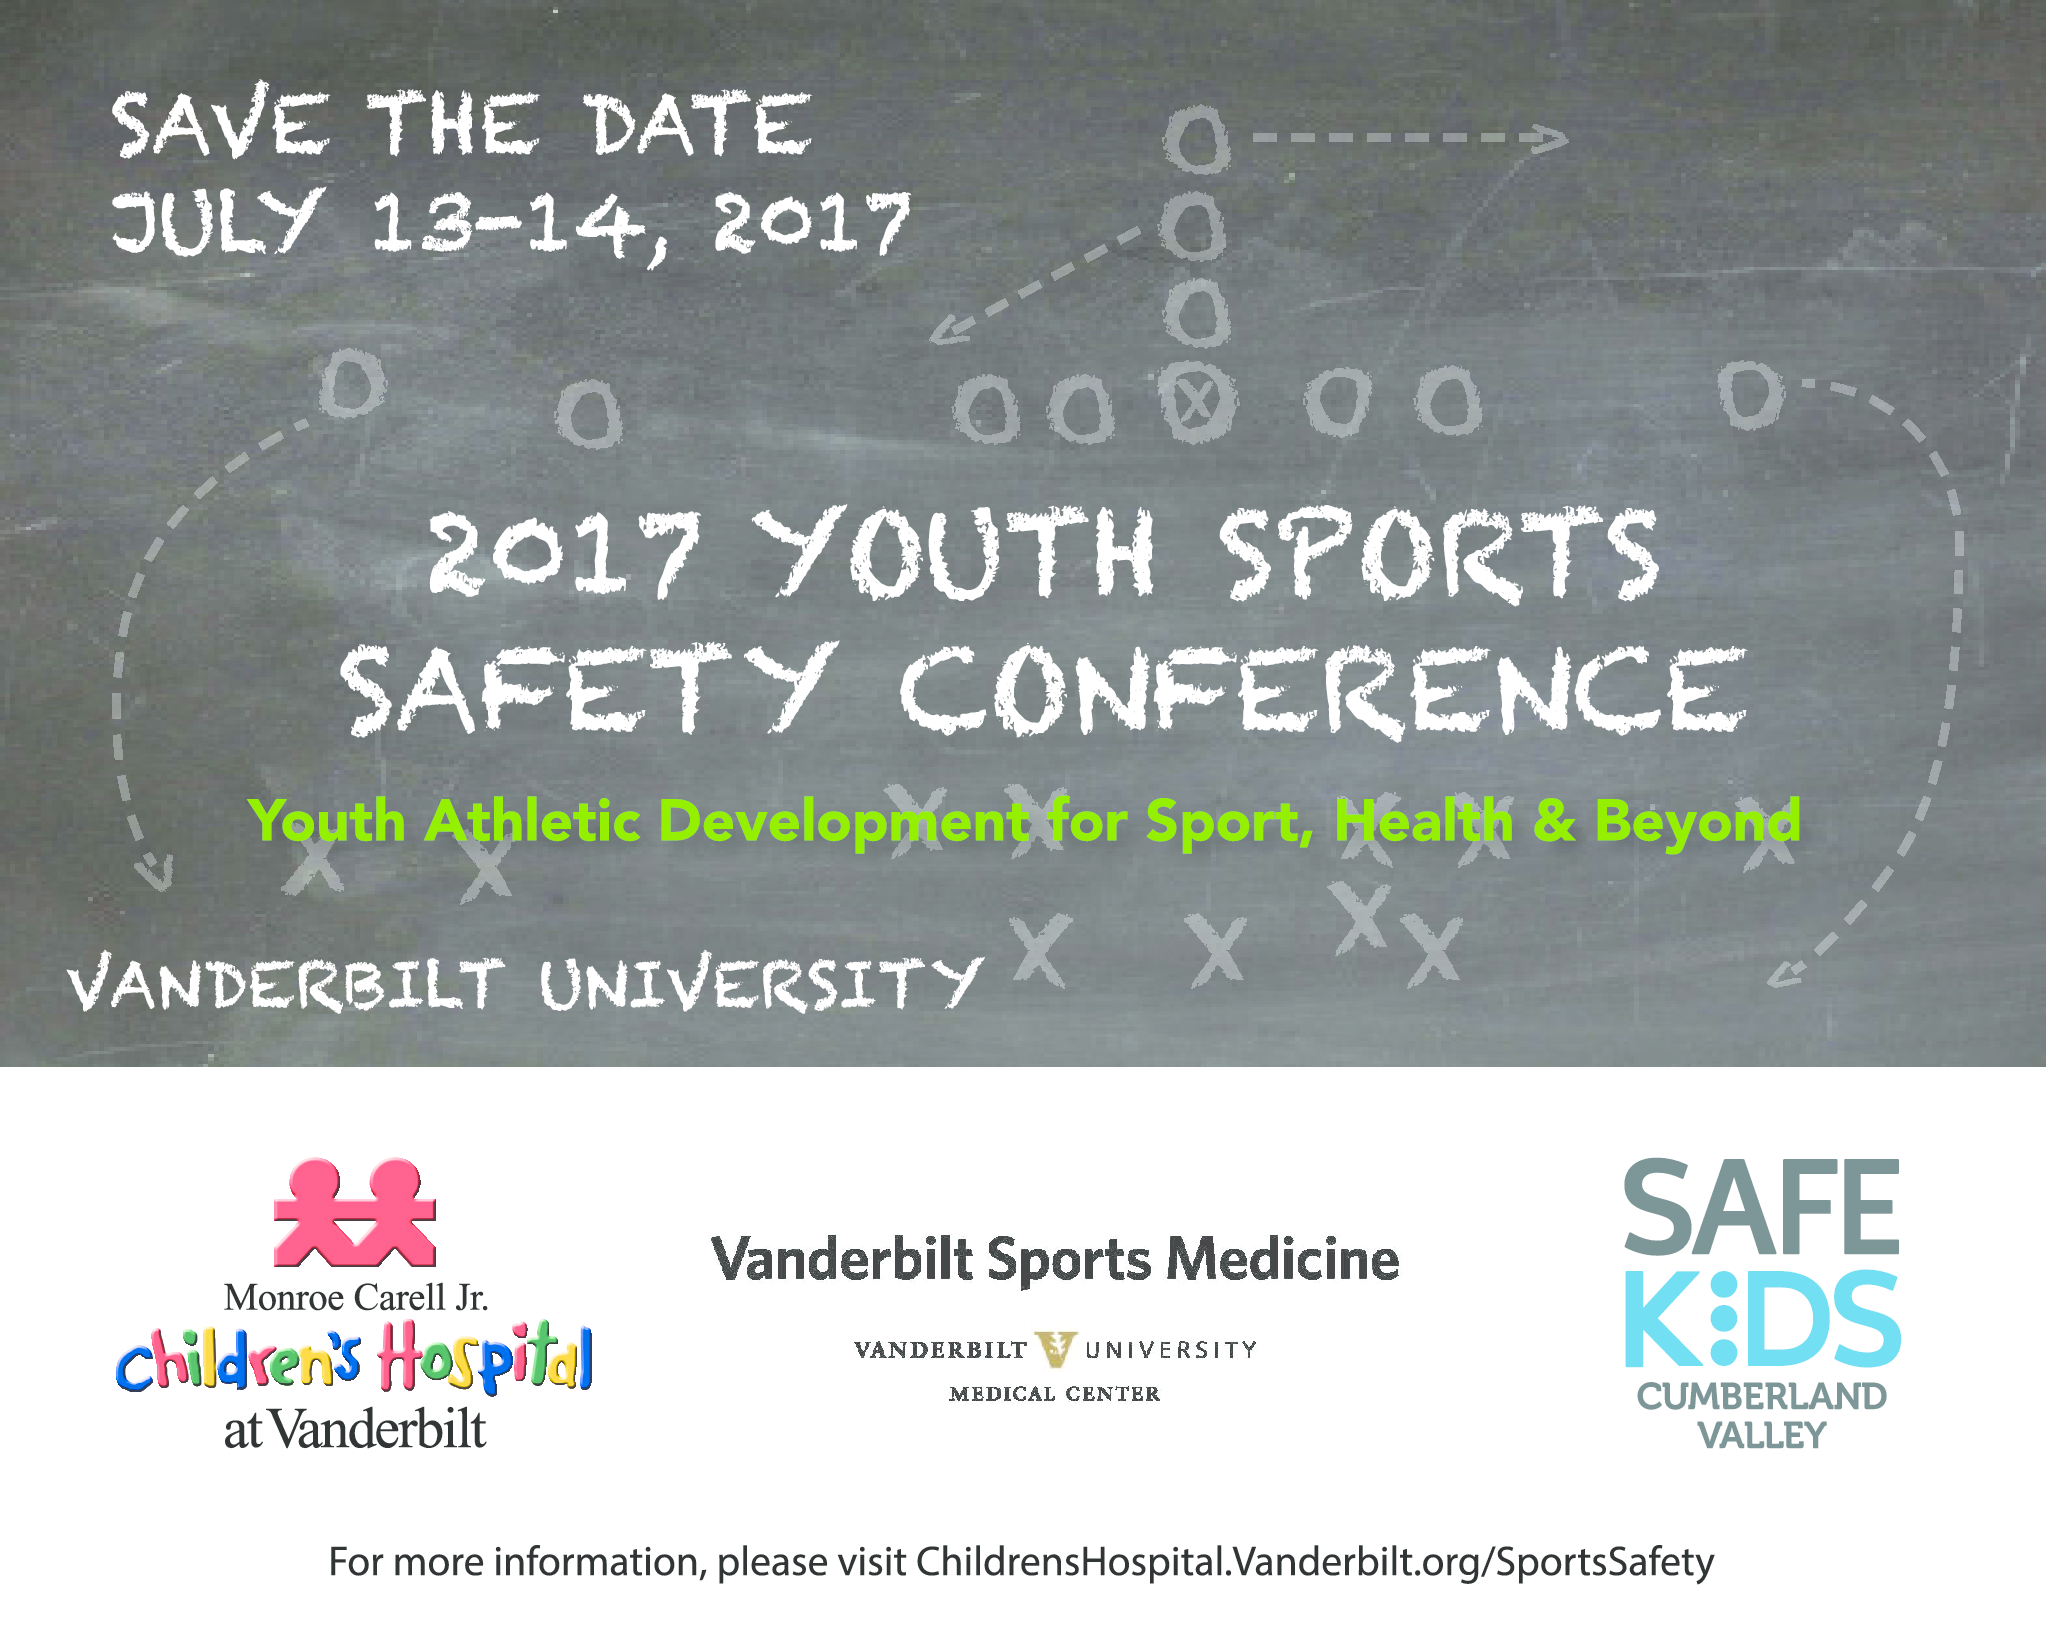 2017 Youth Sports Safety Conference and Gala   102 9 The Buzz